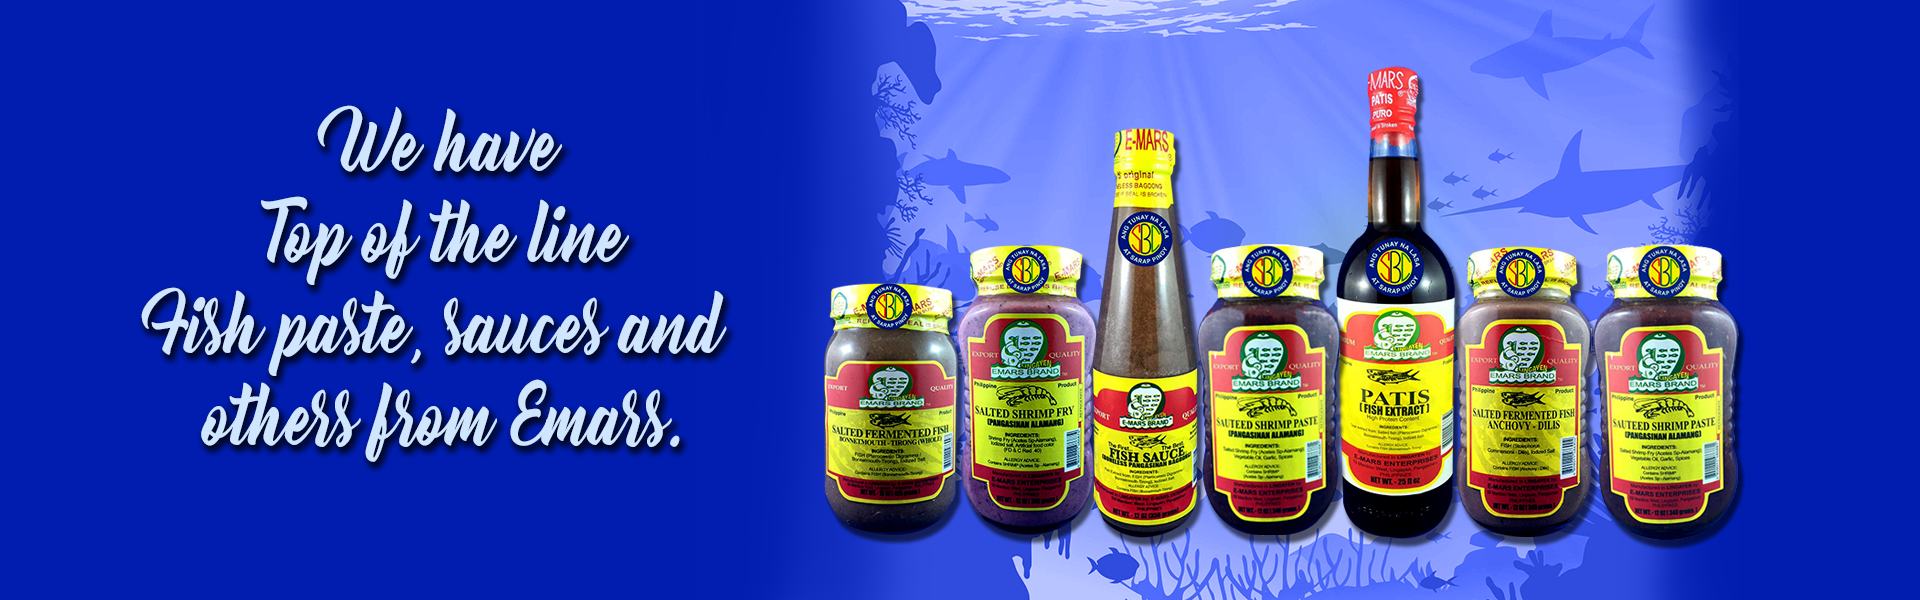 sbc_filipino_foods_banner_2